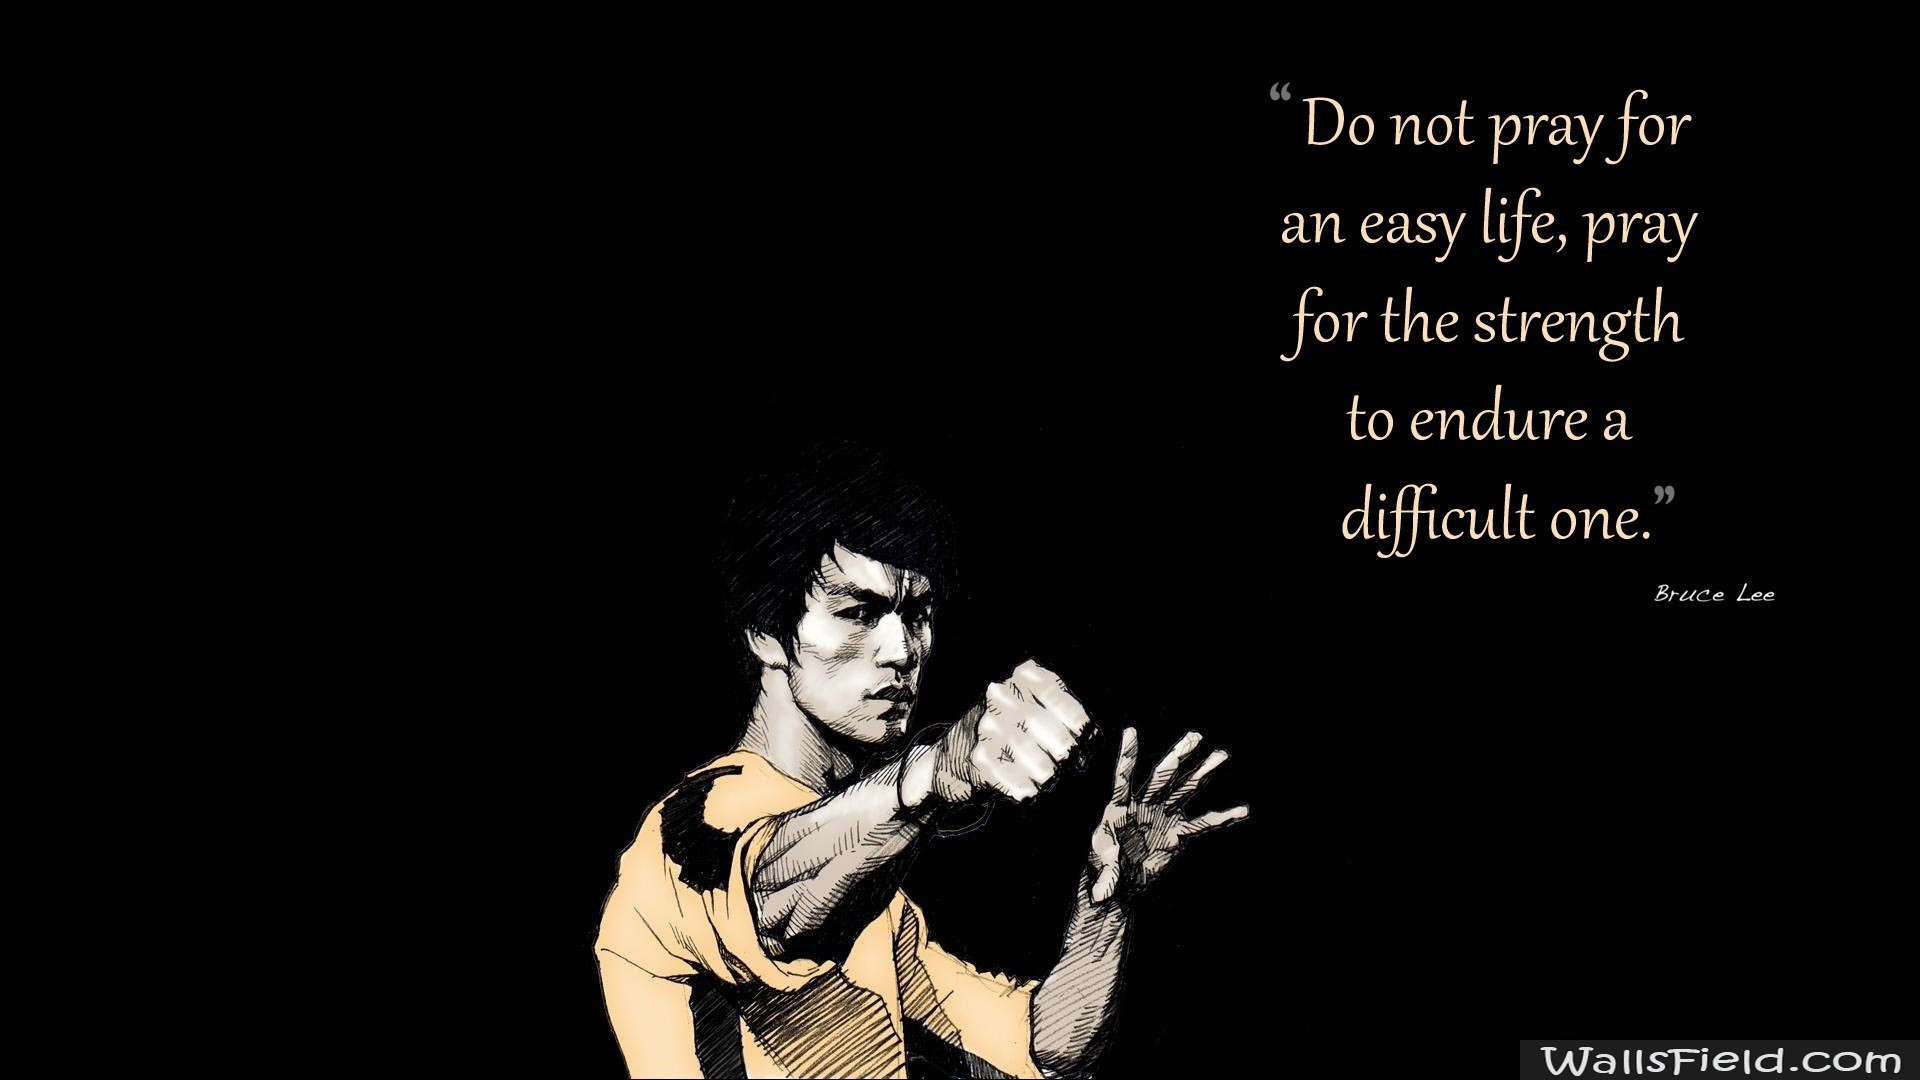 Bruce Lee inspirational quote Typography HD desktop wallpaper, Quote  wallpaper, Bruce Lee wallpaper, Inspiration wallpaper – Typography no.